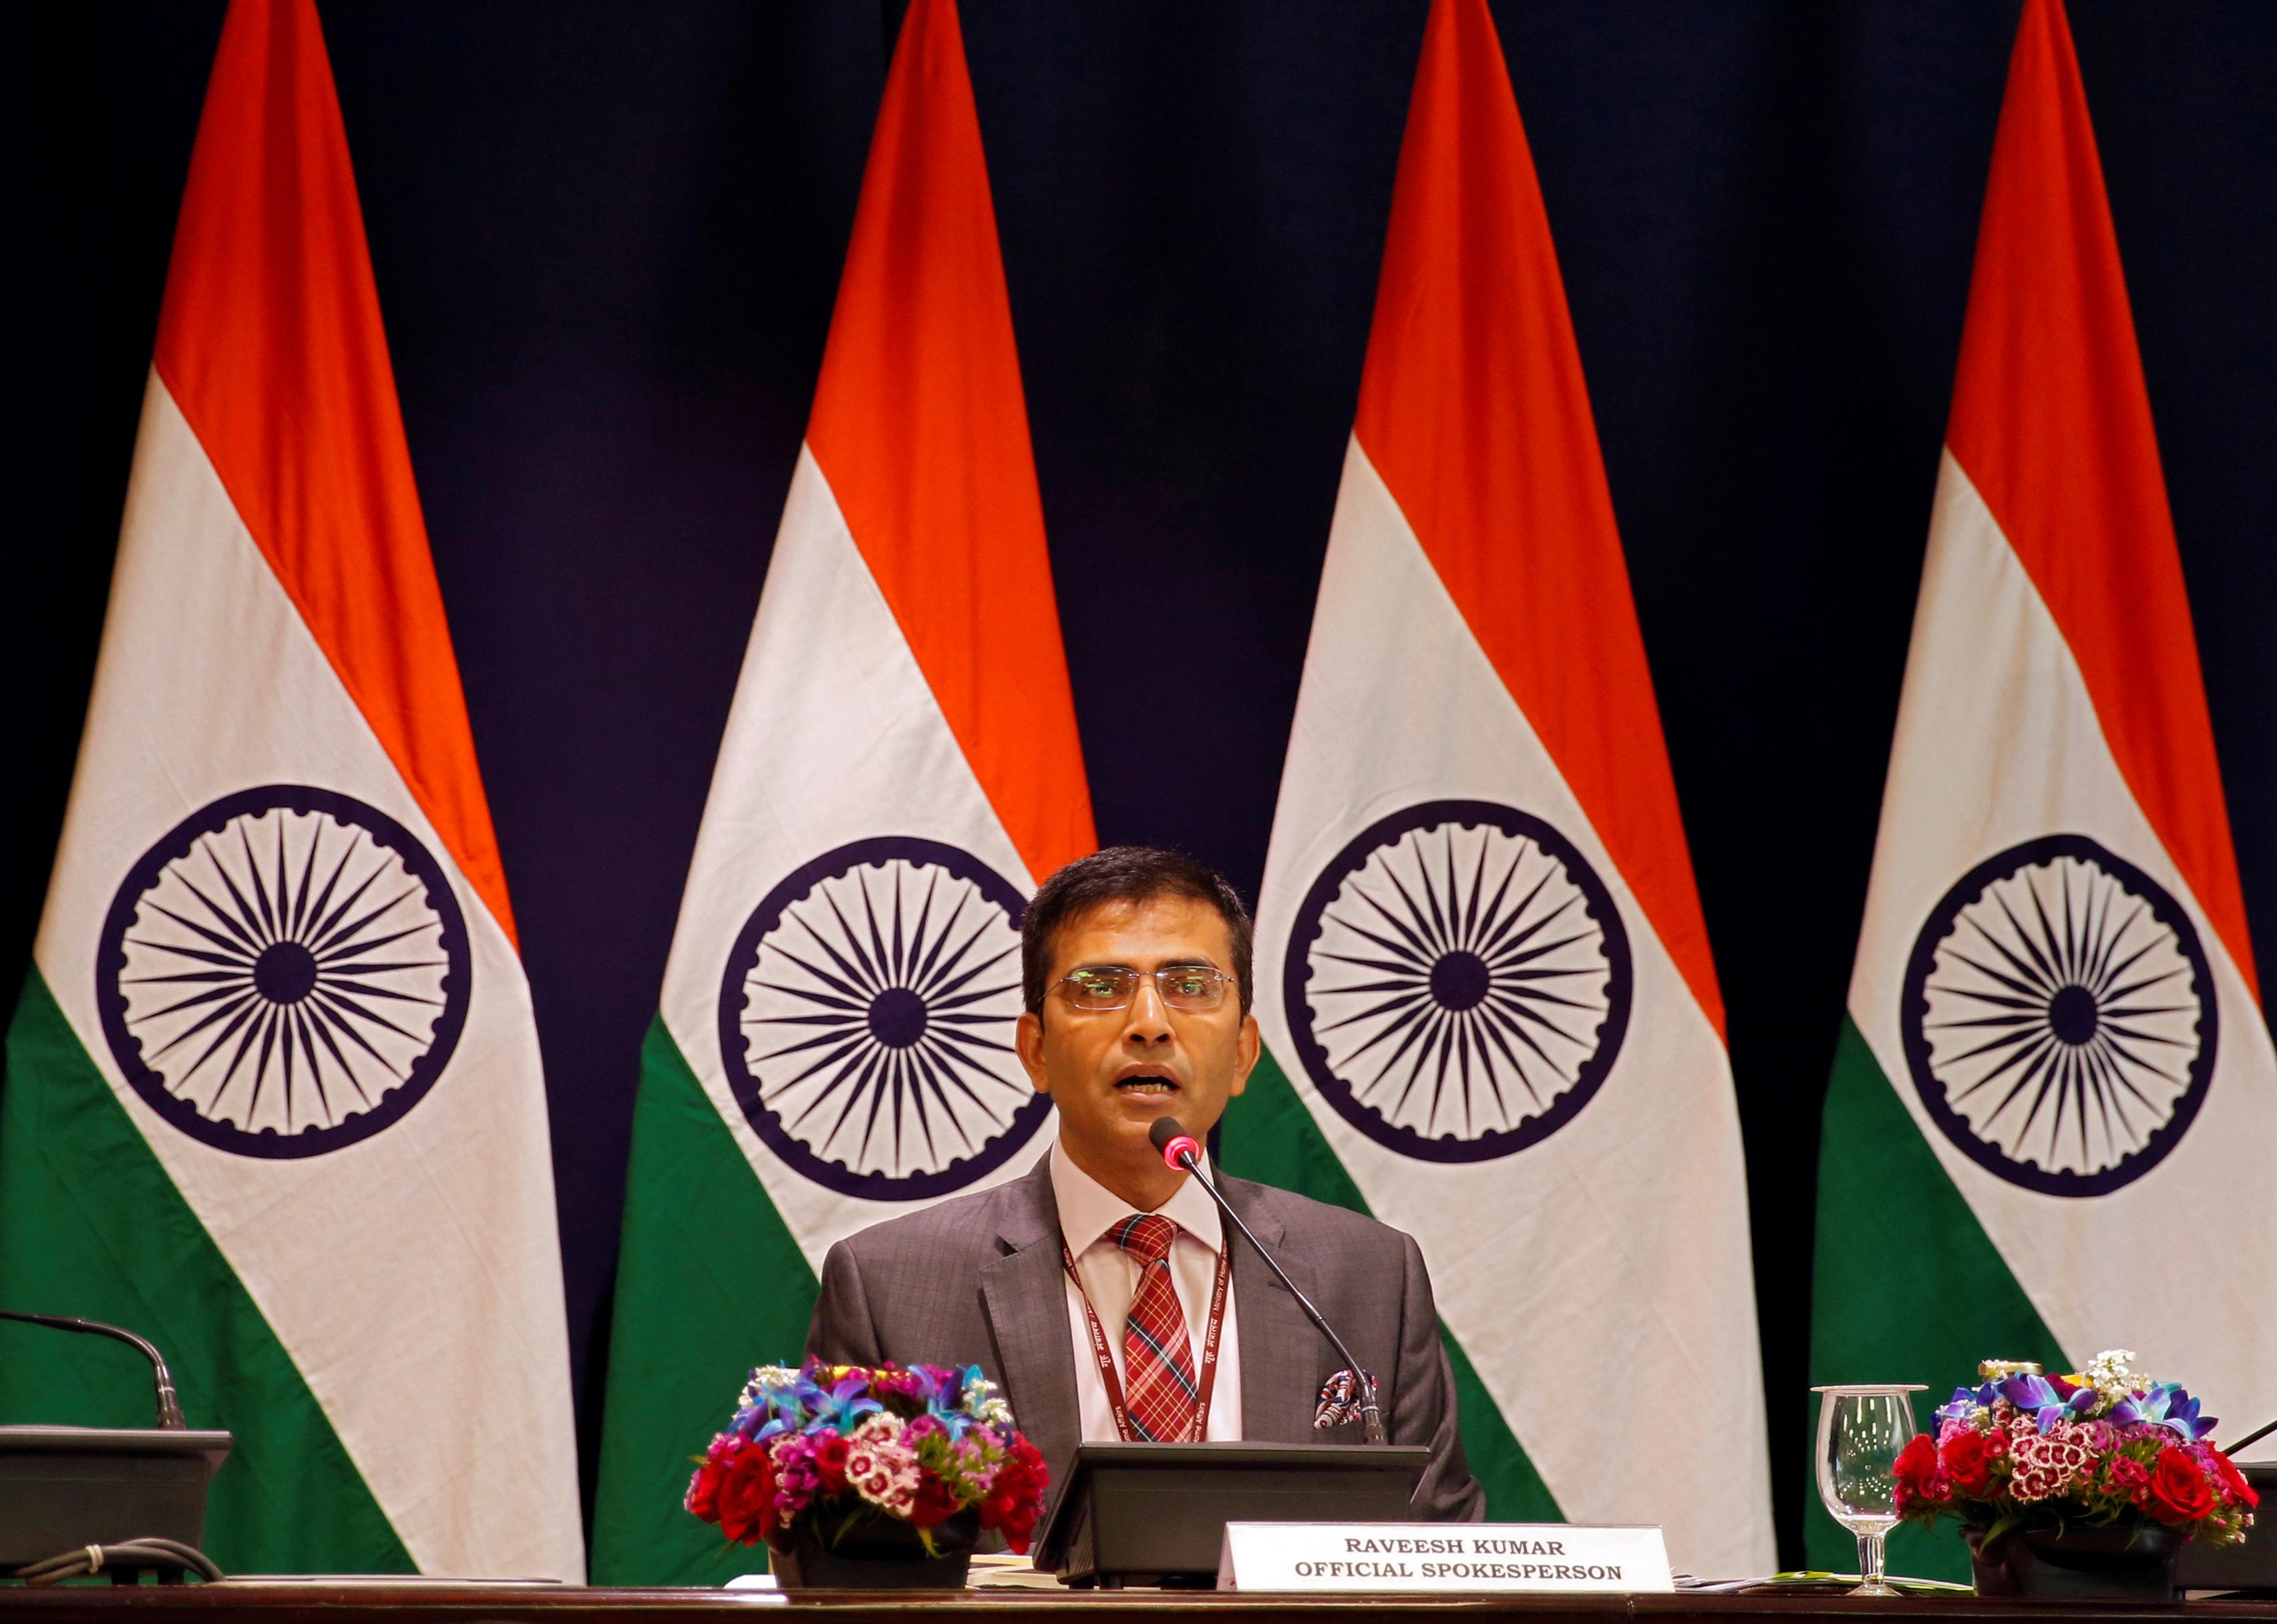 India says in talks with U.S. on H-1B visas, no official word on limits